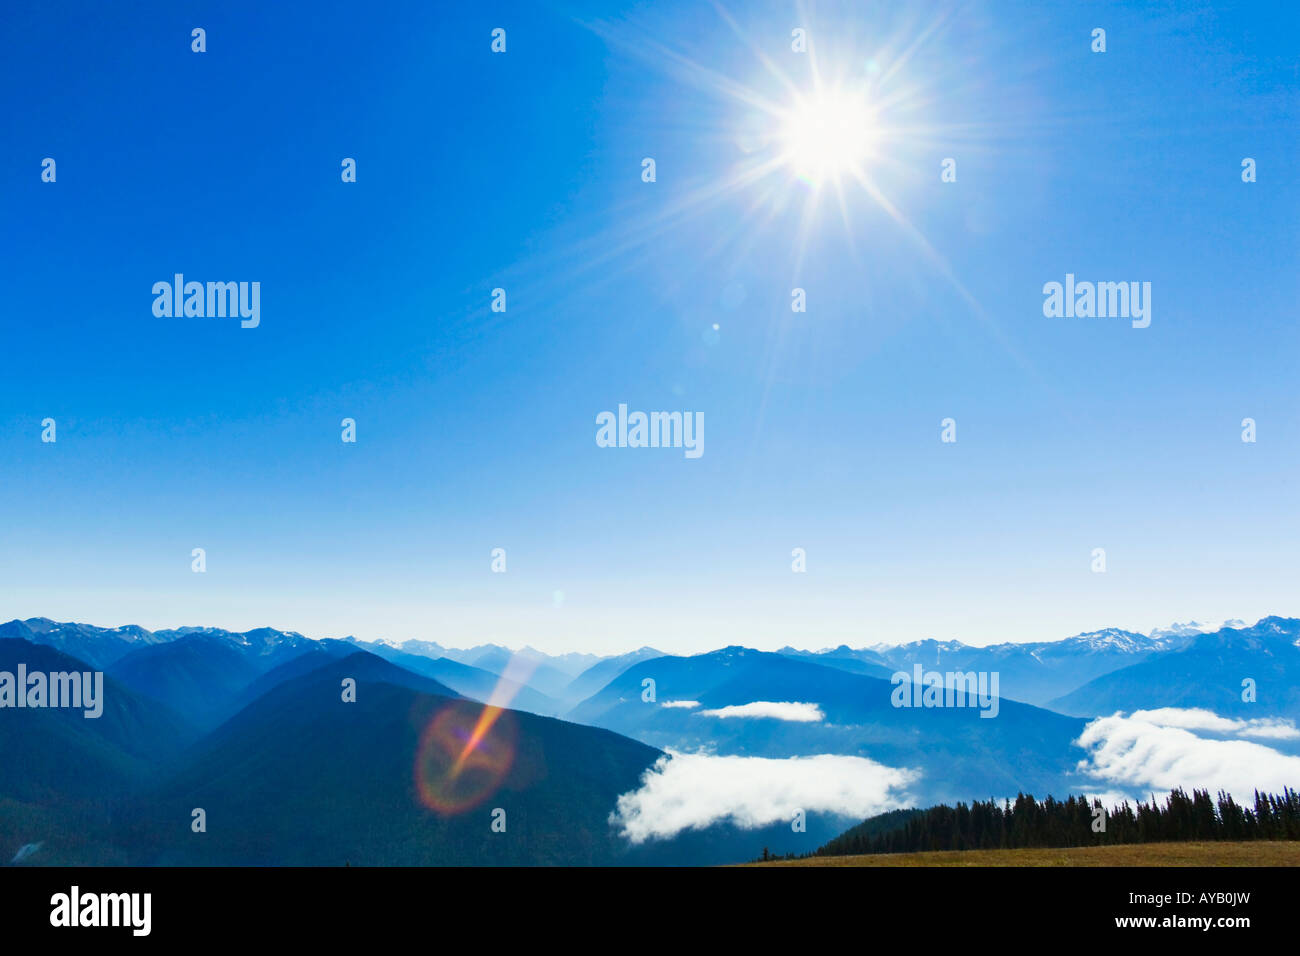 Sun shining over the Olympic mountains as seen from Hurricane Ridge in Olympic National Park Washington State - Stock Image